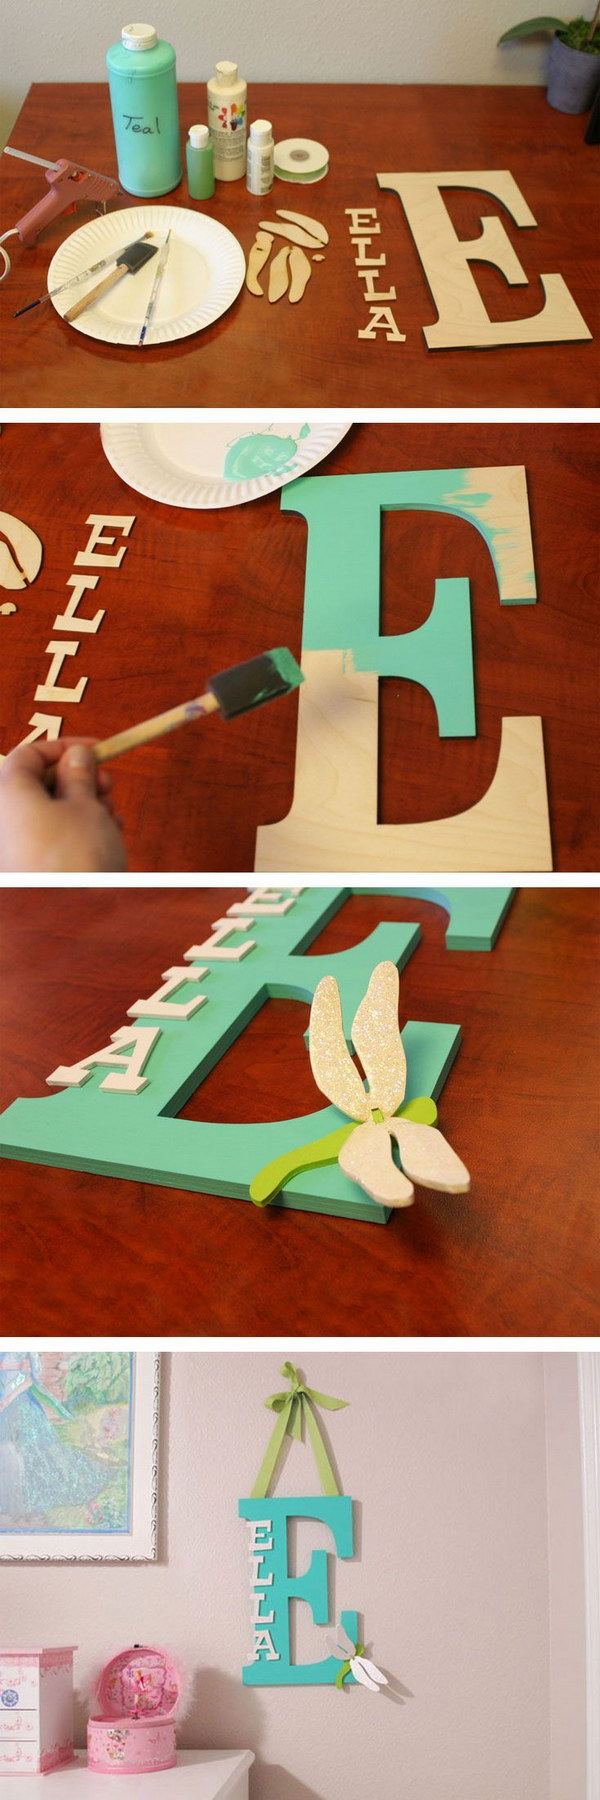 Painted Wooden Letter For A Kidsu0027 Room